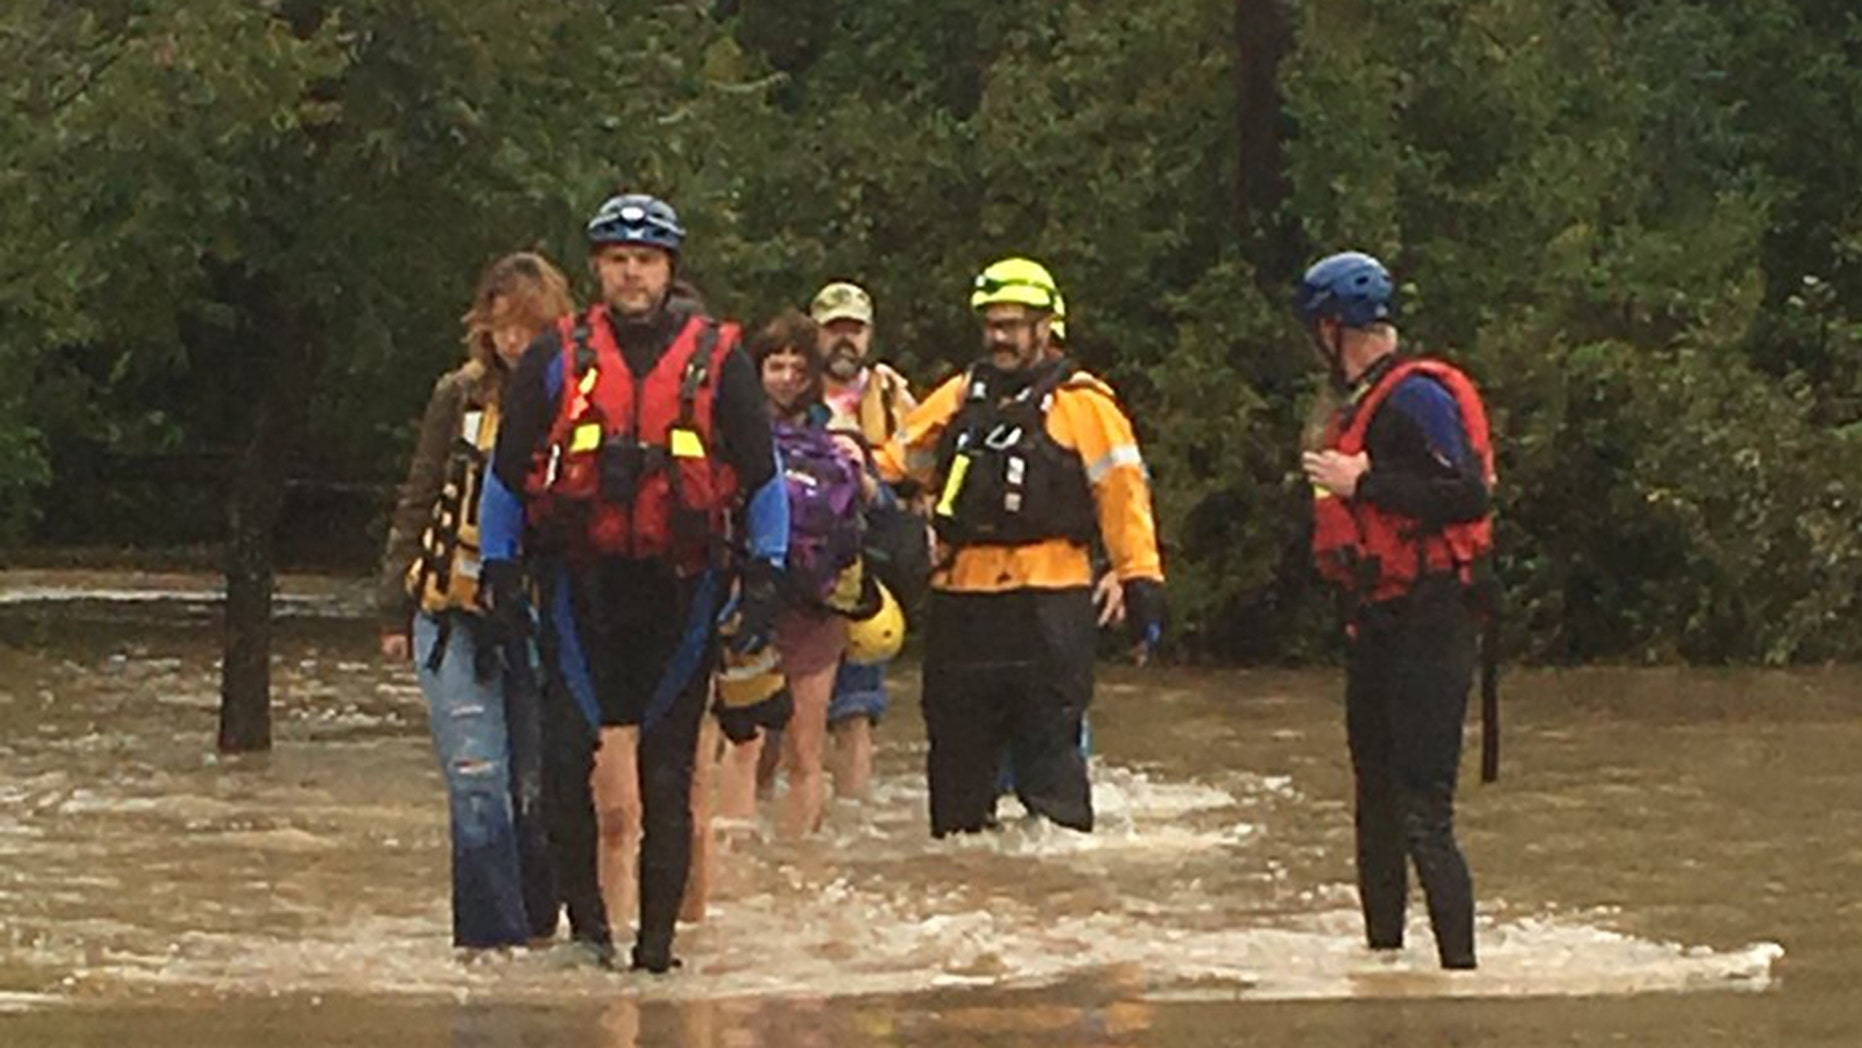 At least 60 people from a wedding party had to be rescued Saturday by rising floodwaters in Texas.